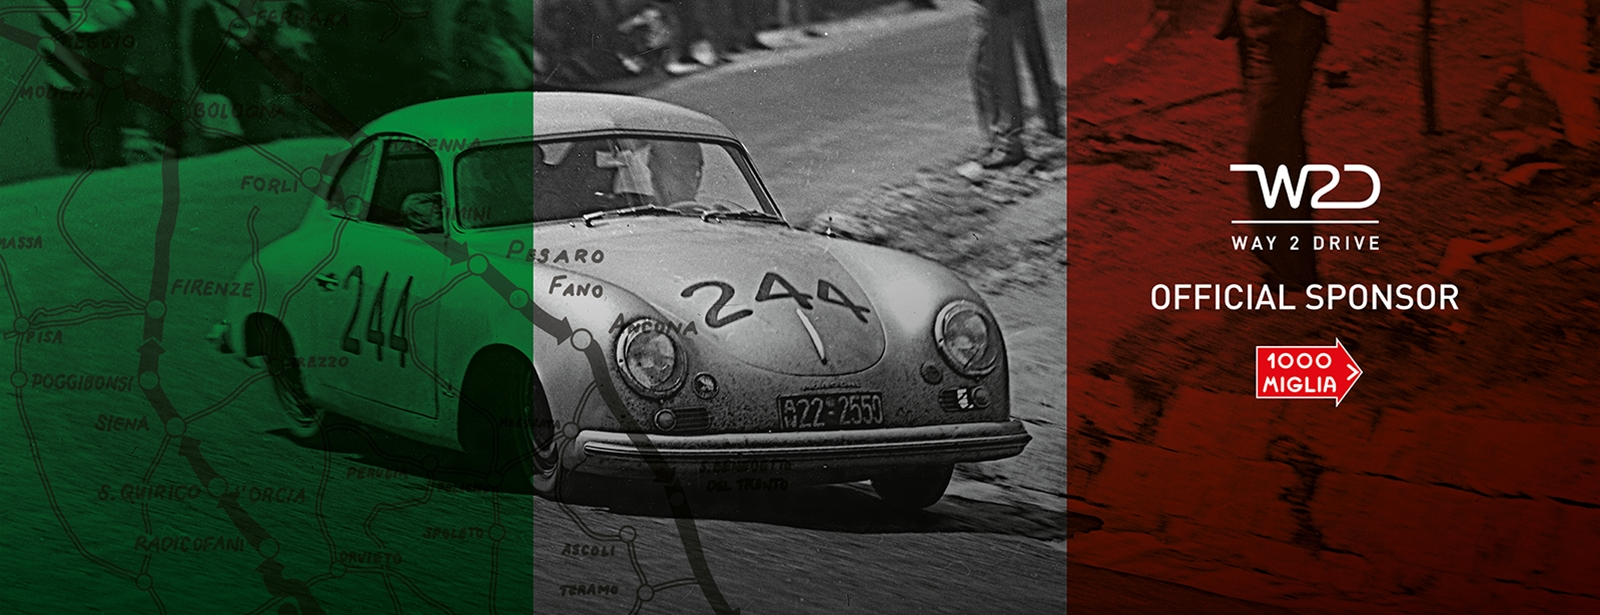 1000 Miglia 2019. - 15th – 18th May 2019.